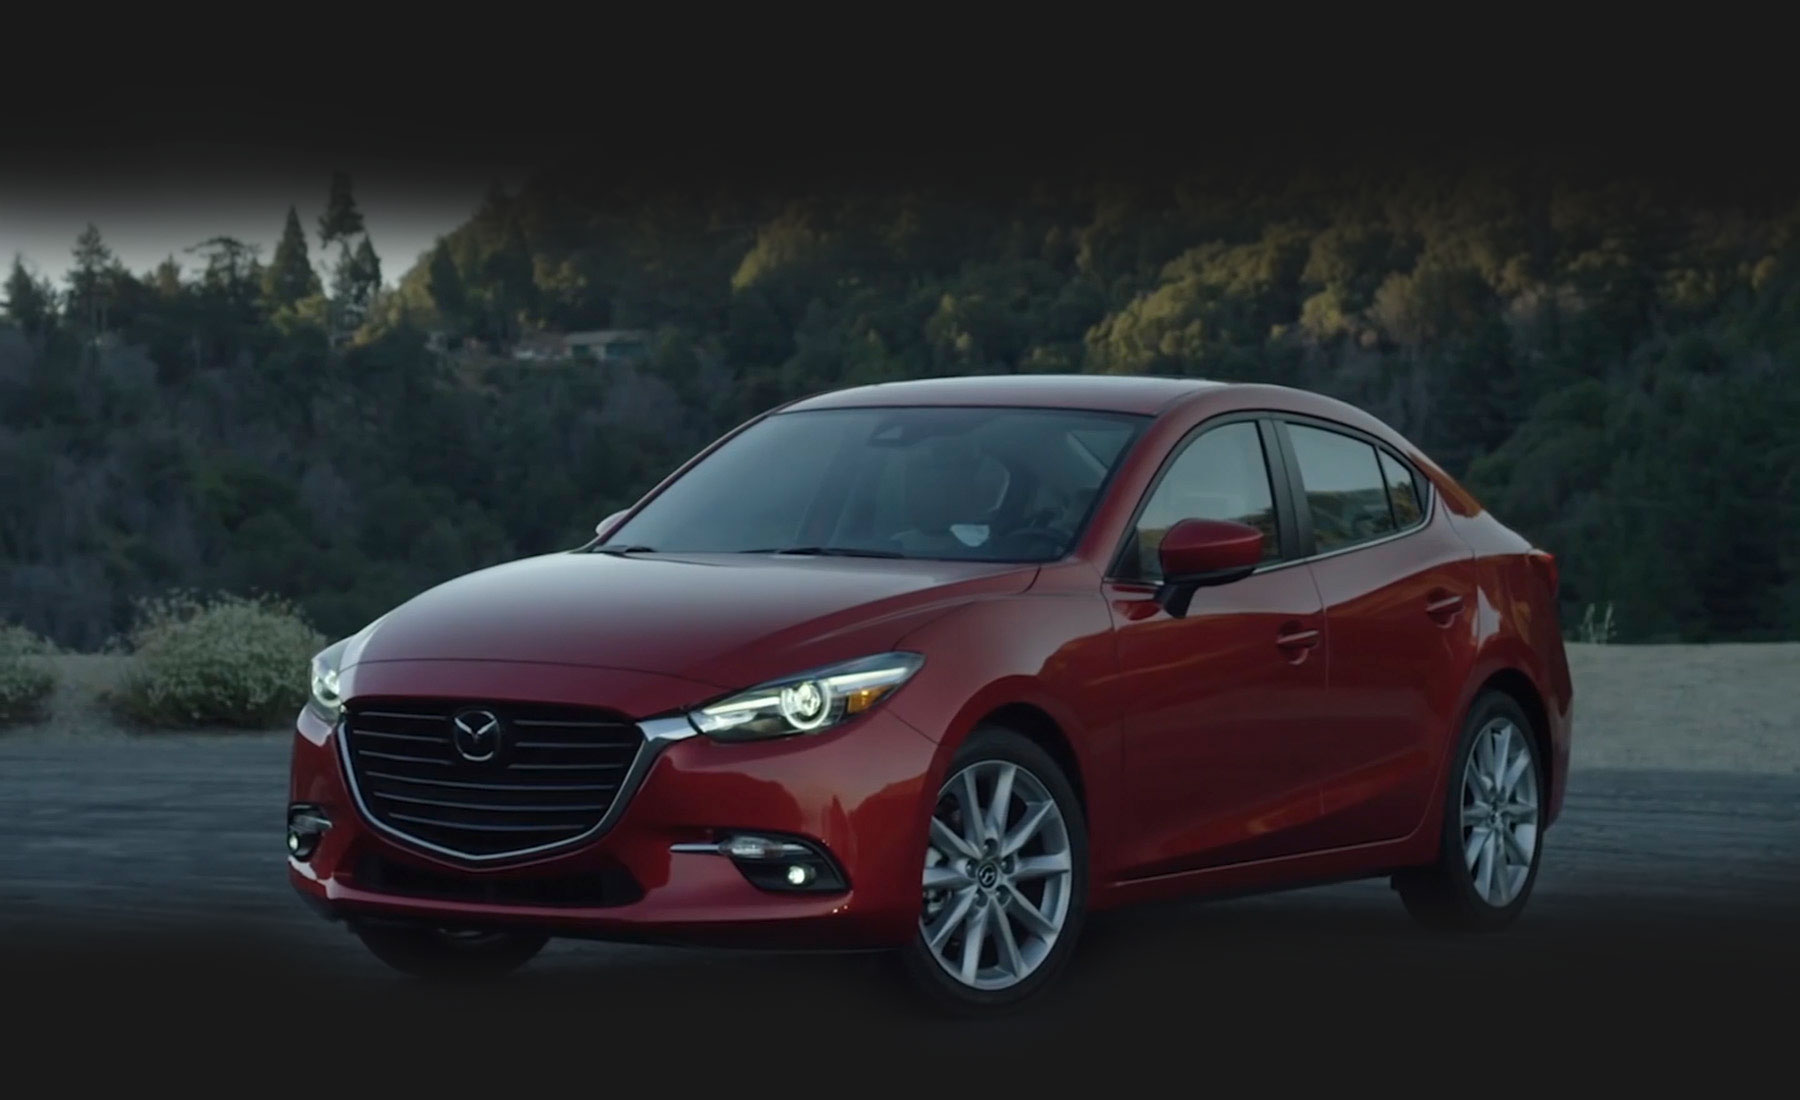 mazda 3 sed n 2018 drive together. Black Bedroom Furniture Sets. Home Design Ideas